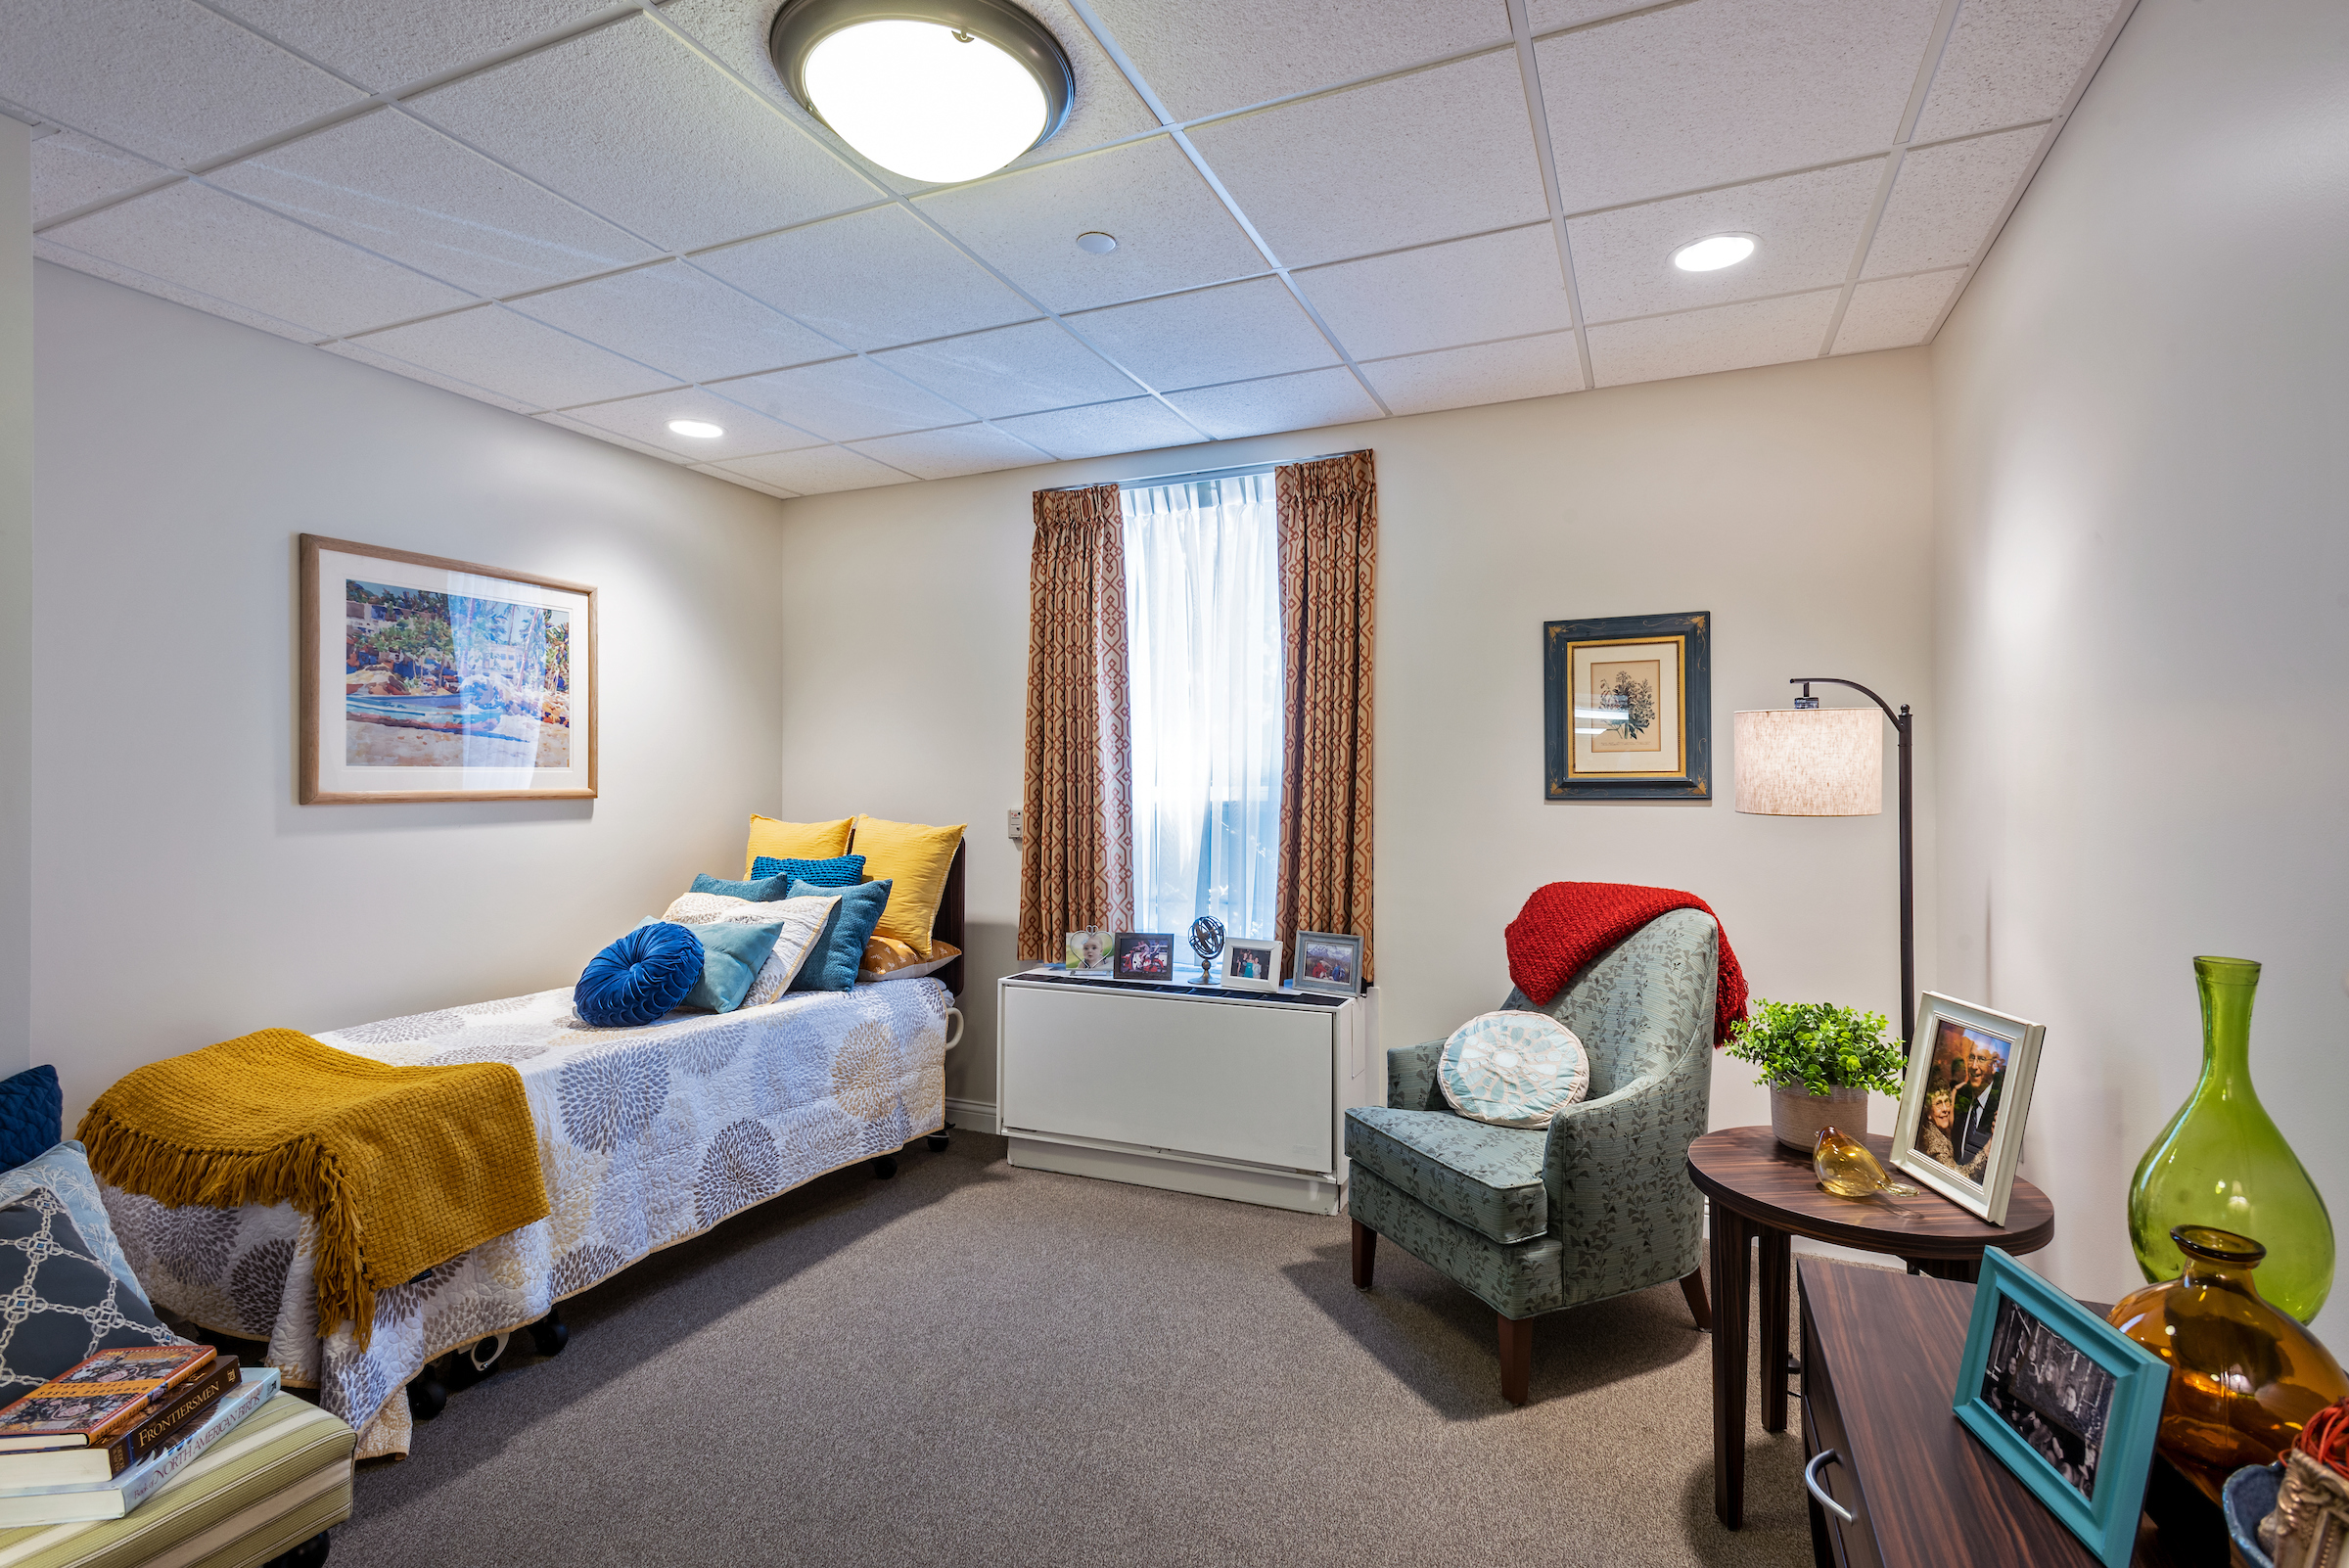 Berghamer House - For seniors with physical challenges